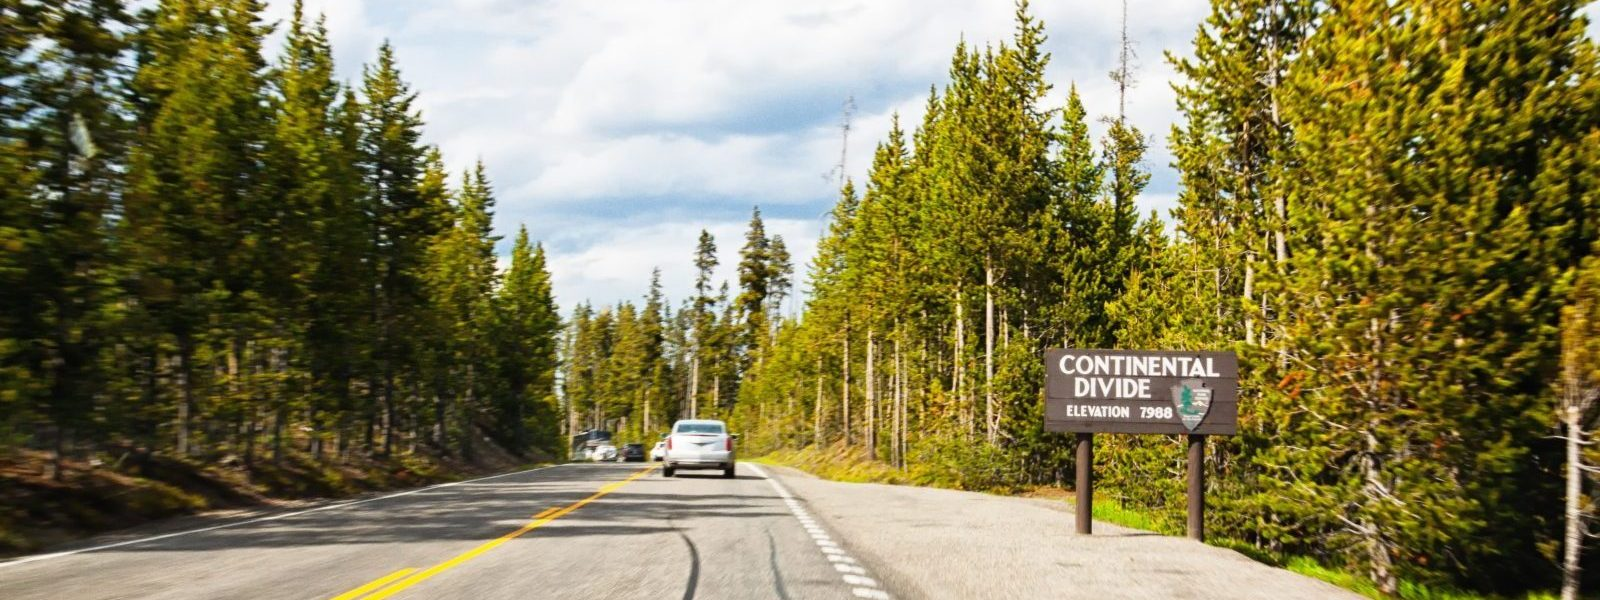 Yellowstone Travel -passing the Continental Divide